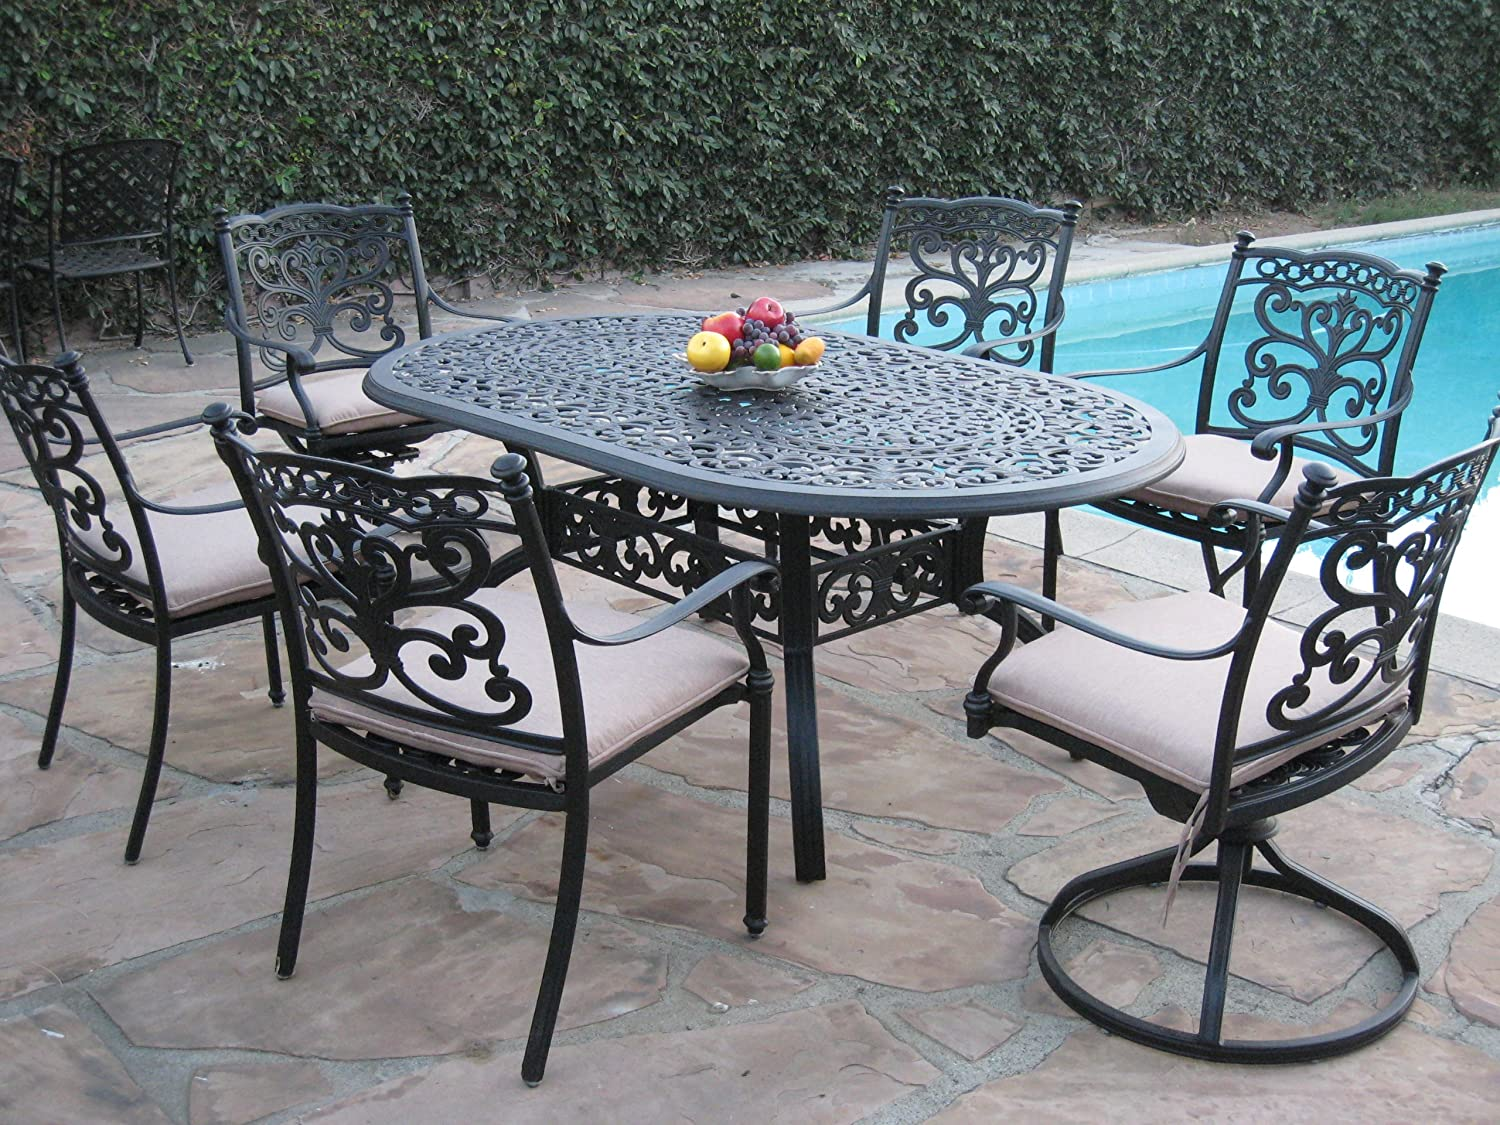 Outdoor Patio Furniture 7 Piece Aluminum Dining Set with 2 Swivel Rockers DS-SA01-4272T